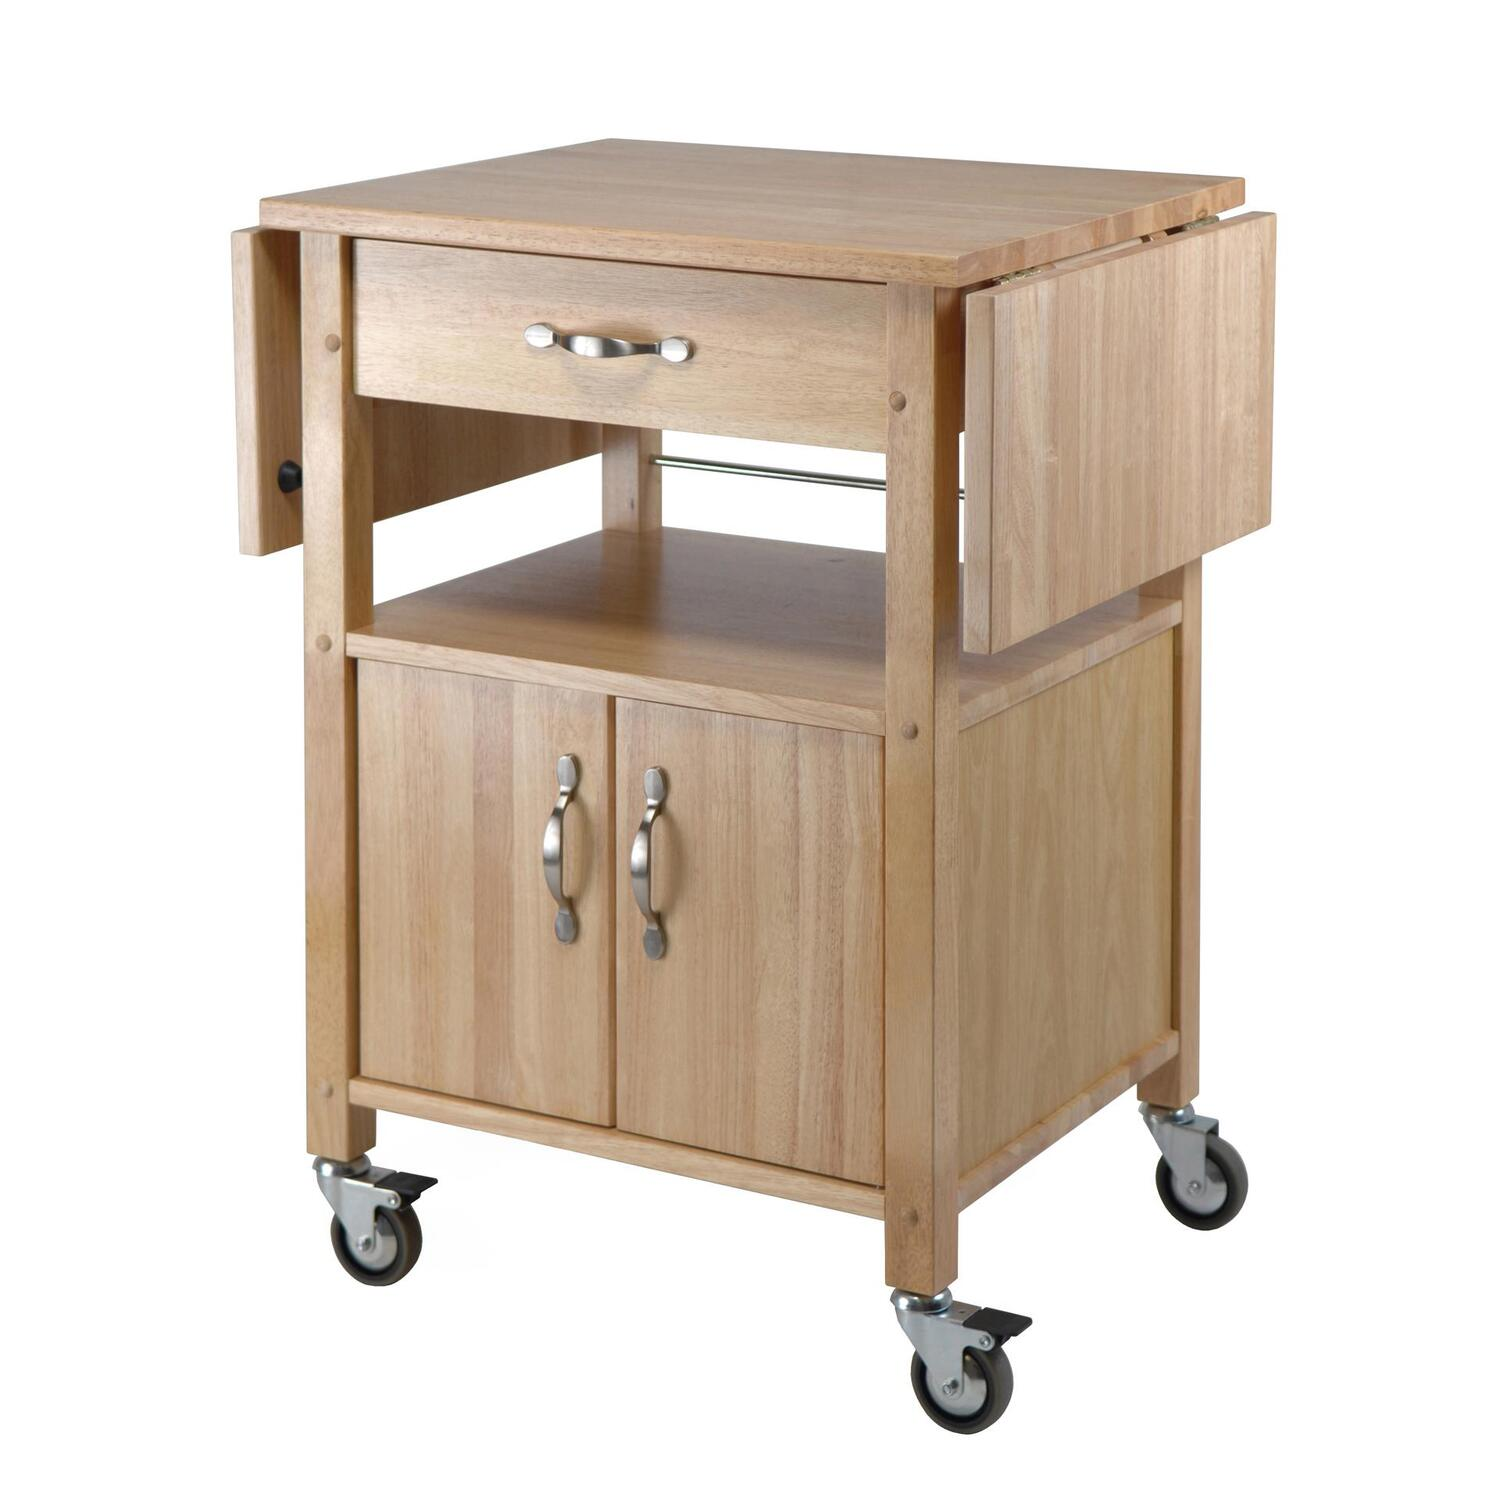 Kitchen Cart Canada Furniture Home Goods Appliances Athletic Gear Fitness